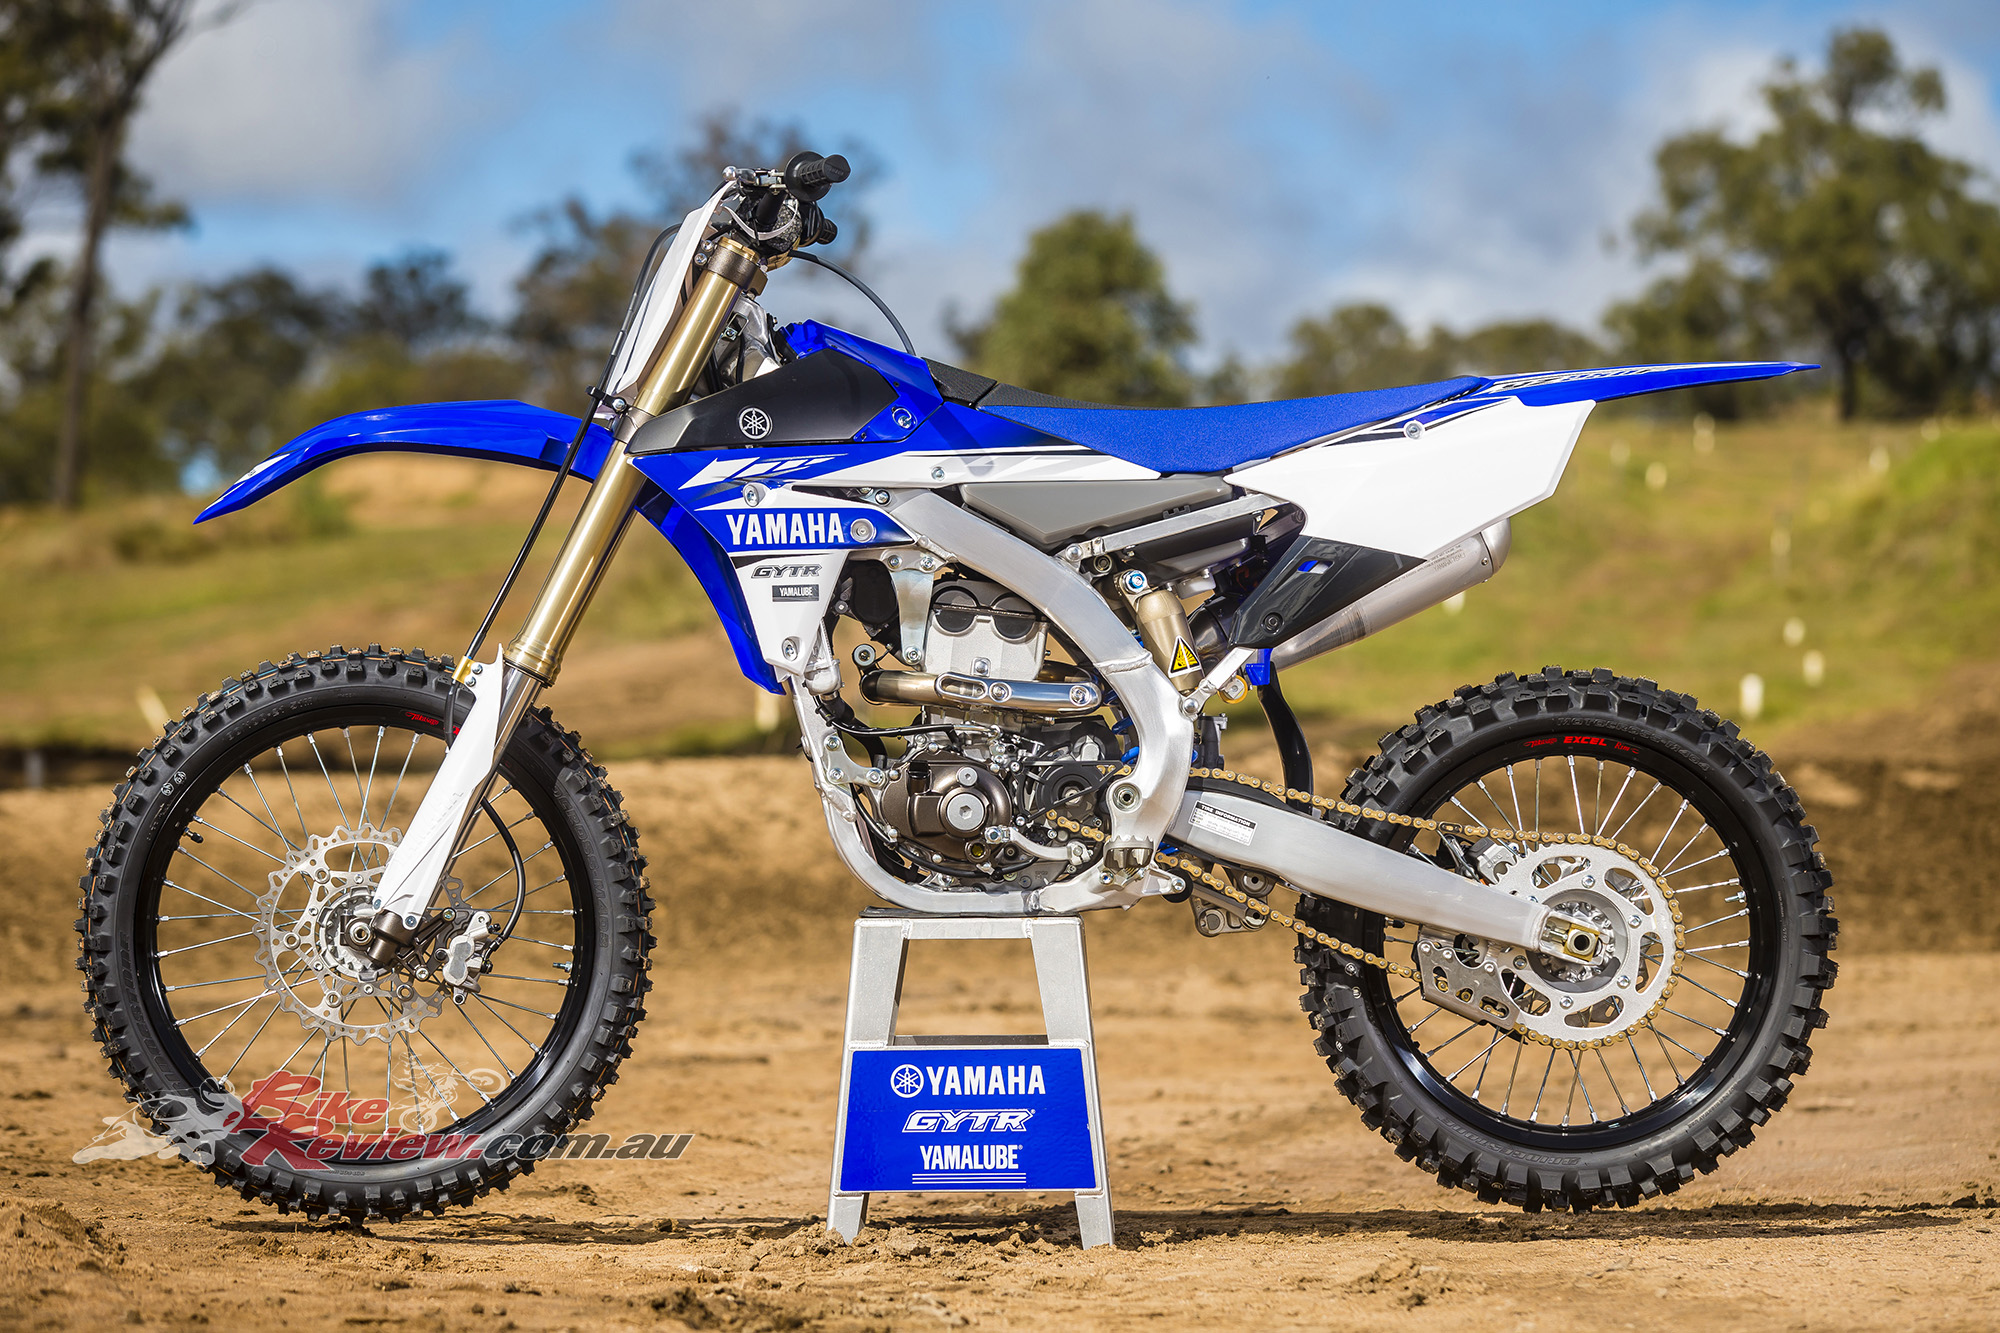 2017 Yamaha Yz250f Major Revisions Bike Review